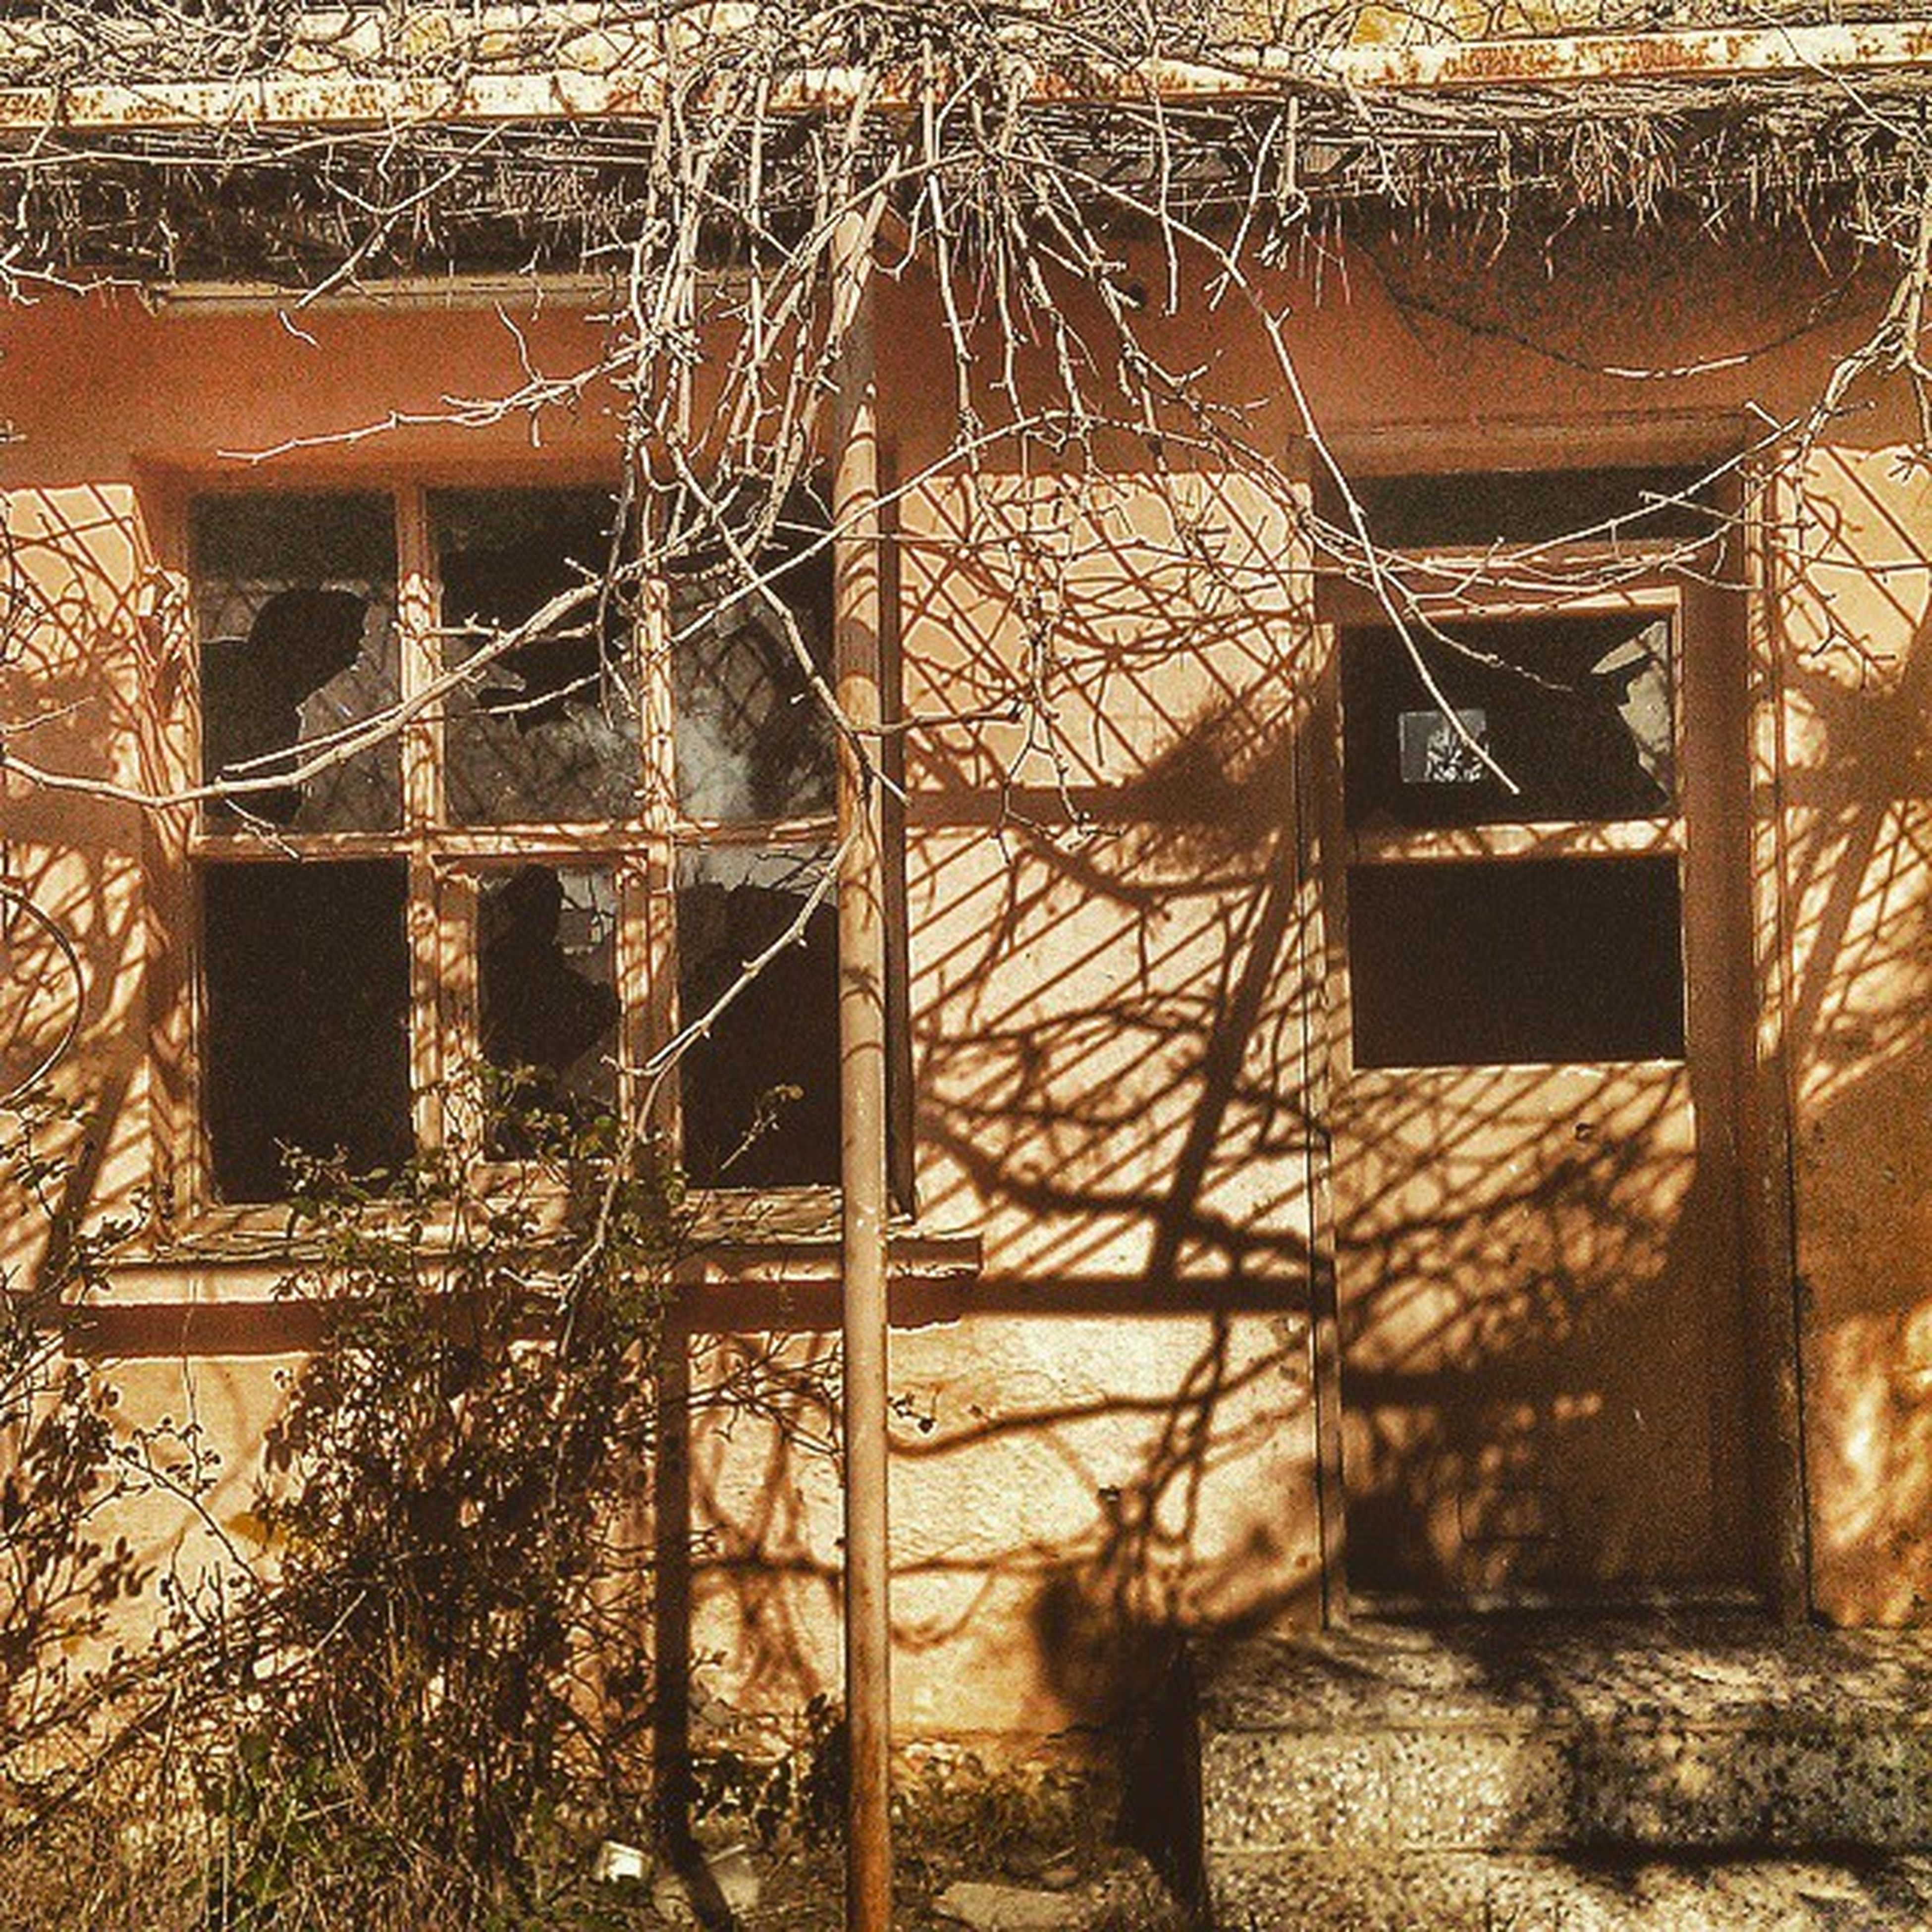 built structure, architecture, building exterior, damaged, window, abandoned, obsolete, run-down, old, deterioration, metal, house, weathered, bad condition, indoors, wall - building feature, glass - material, rusty, railing, day